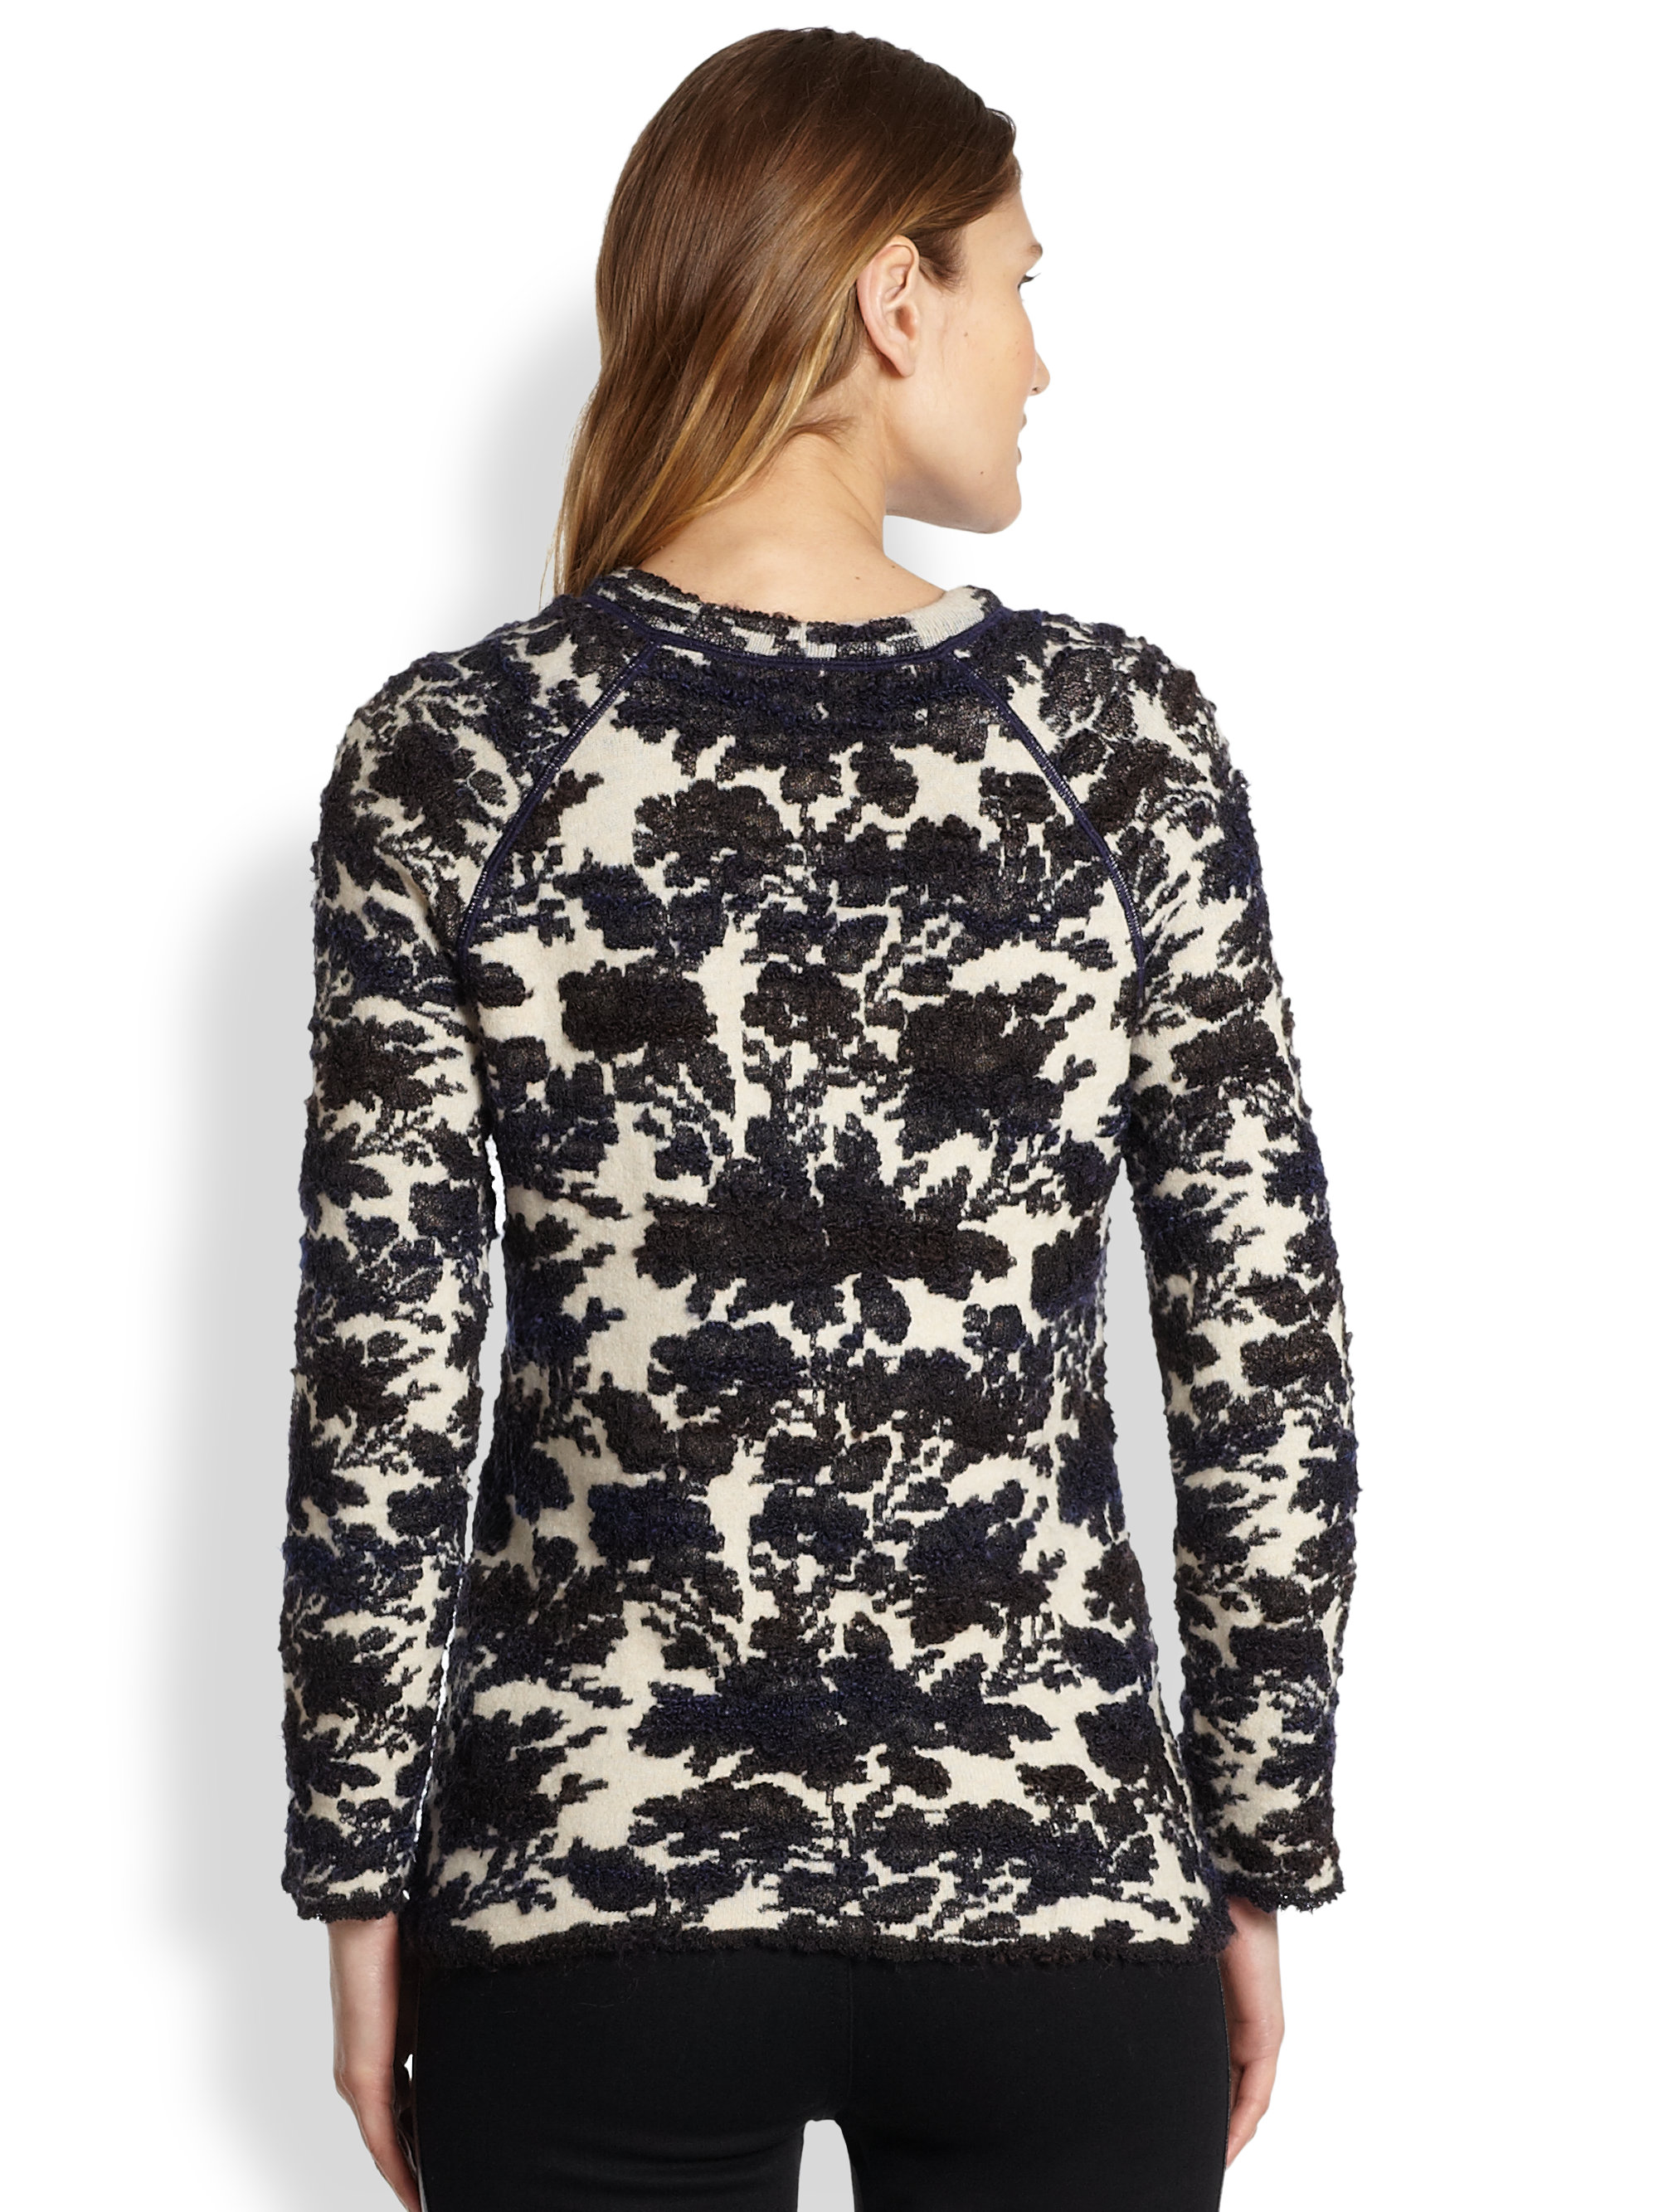 Lyst tory burch devon sweater in black for Tory burch fashion island